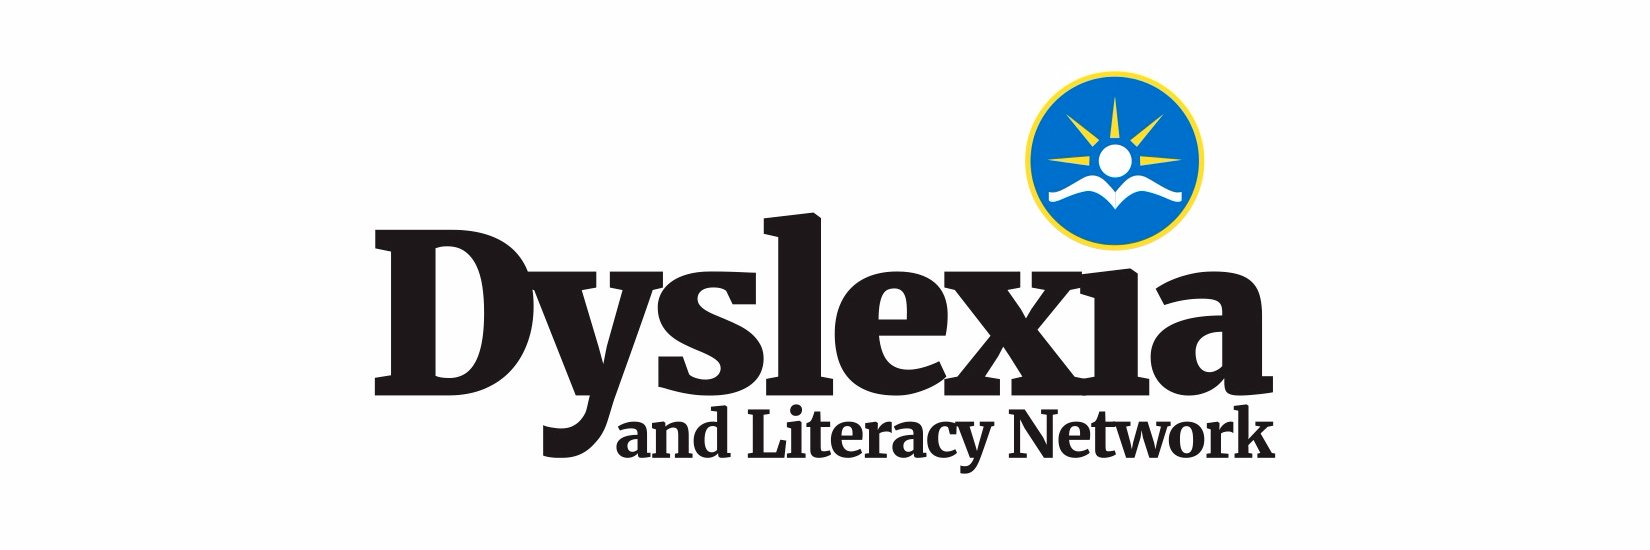 Wow!!! Even more proof that education majors know little to nothing about Dyslexia... twitter.com/elizsn/status/…